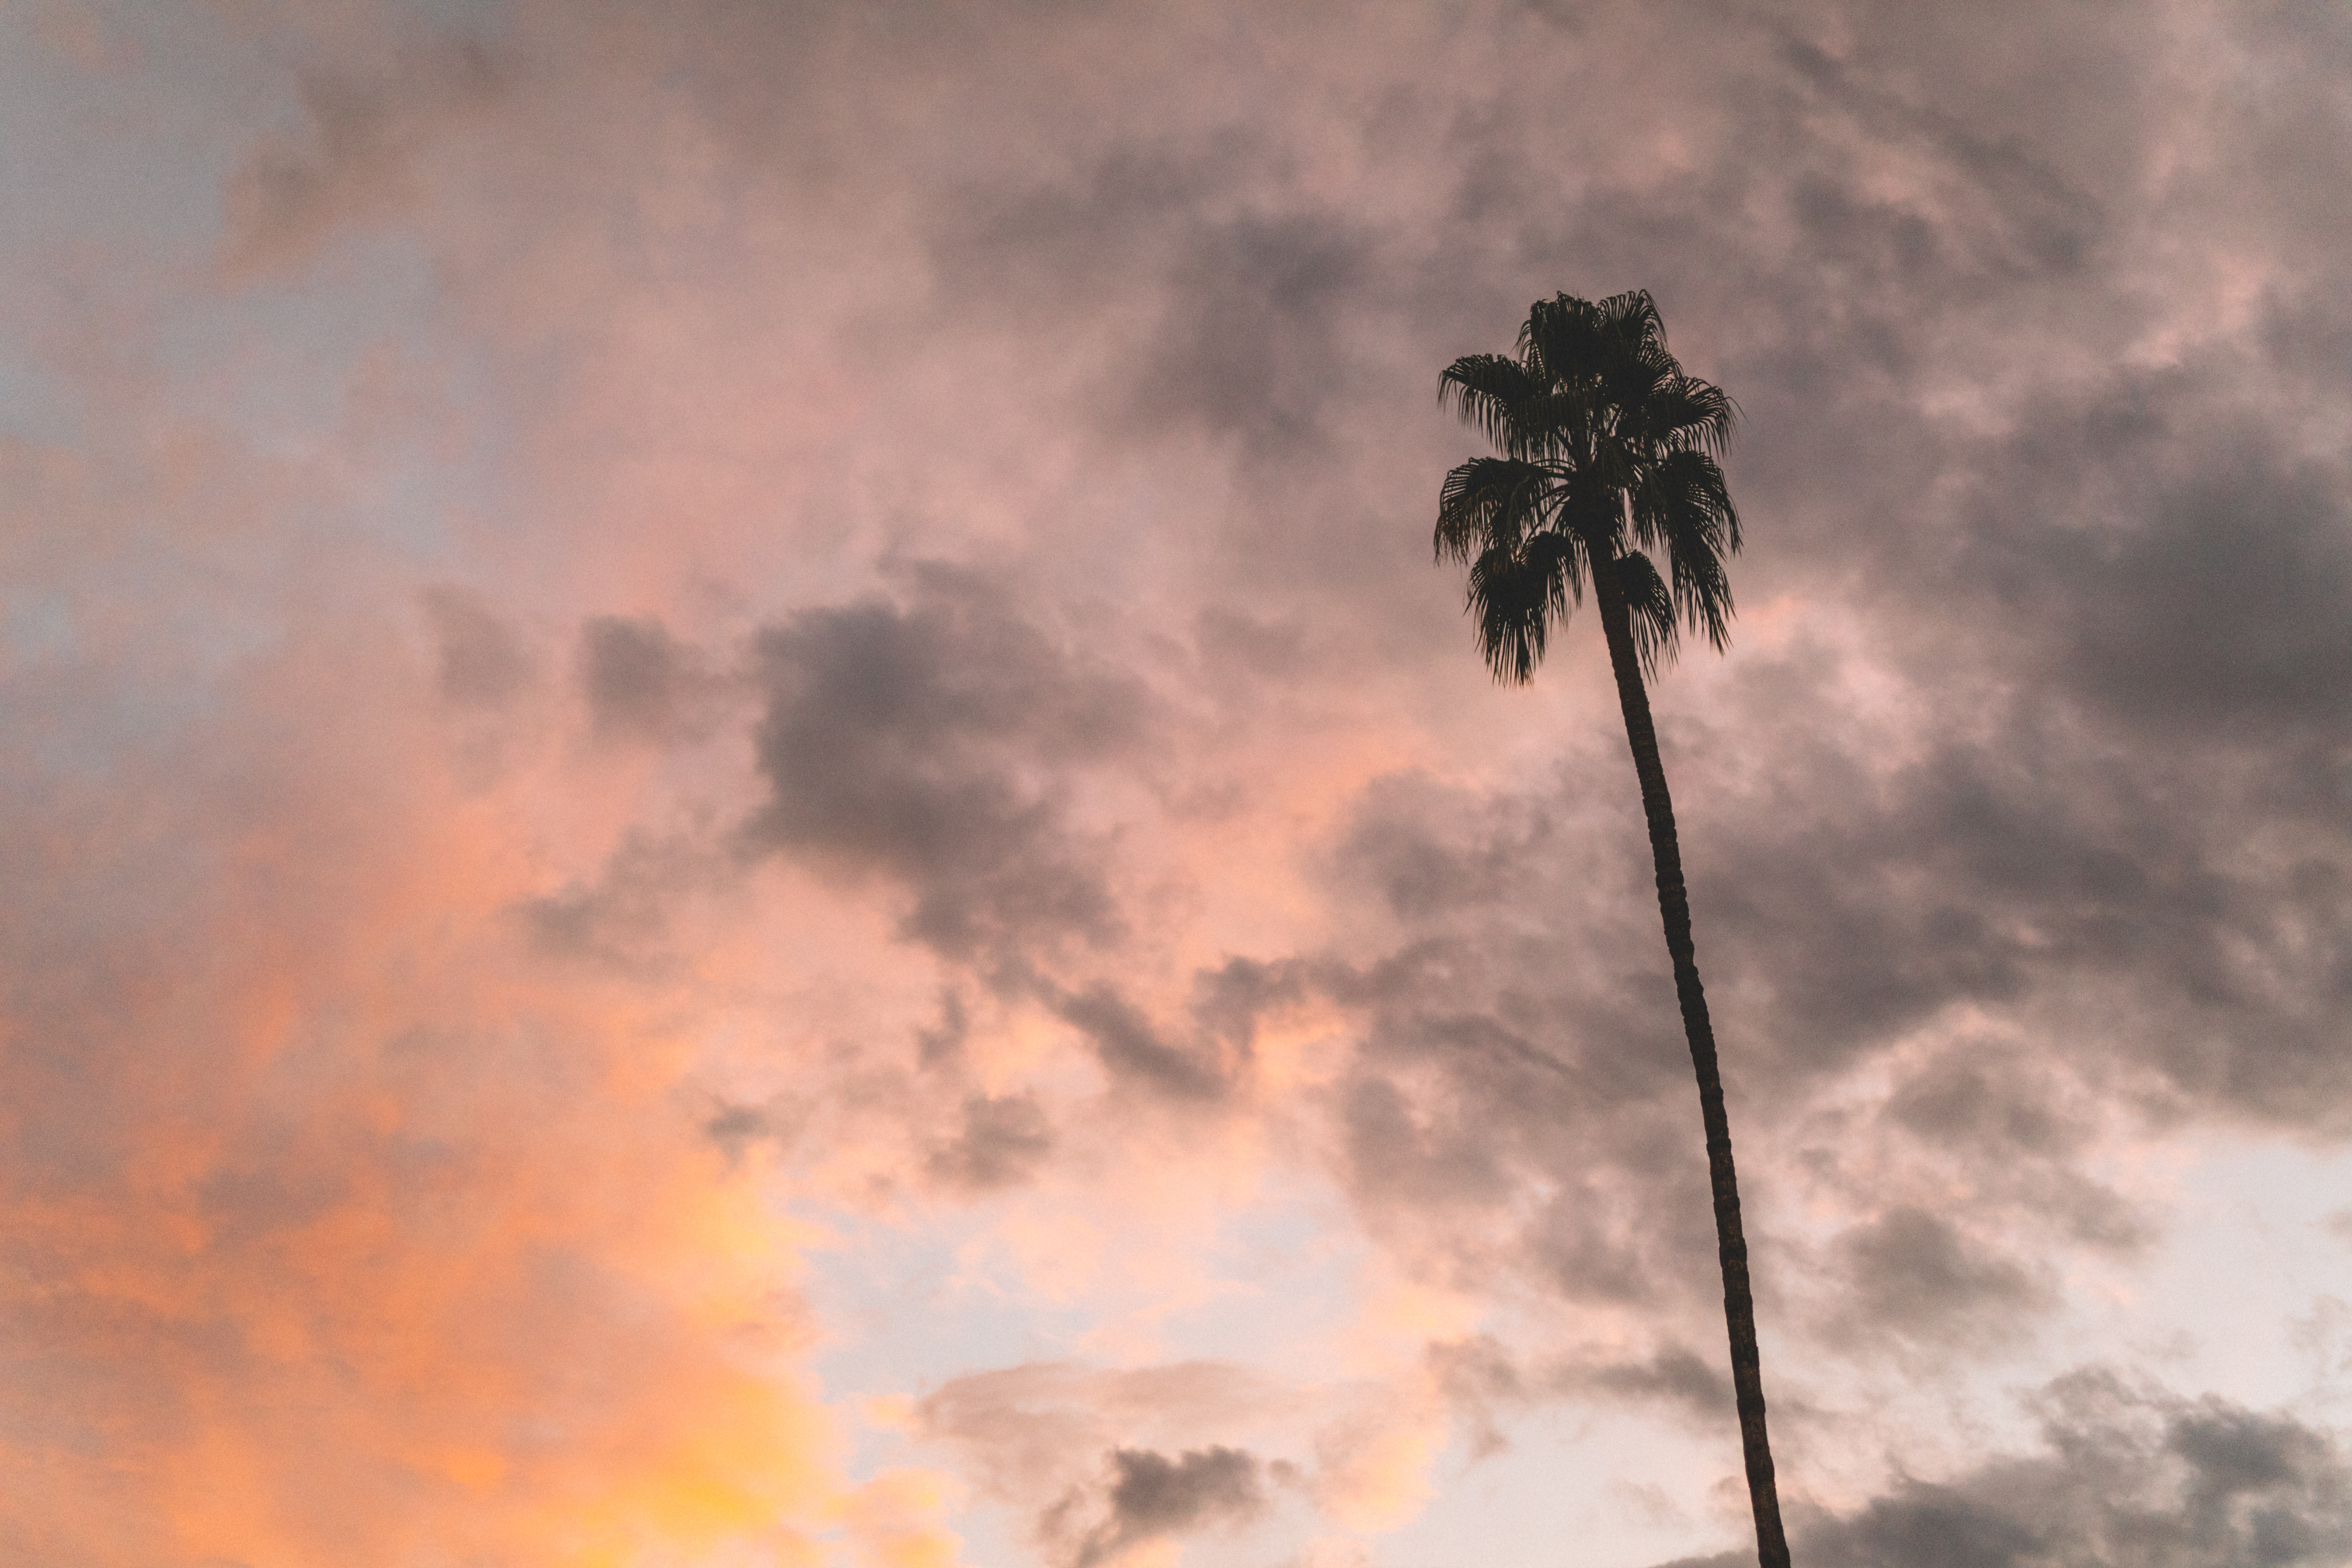 coconut tree under gray and orange cloudy sky